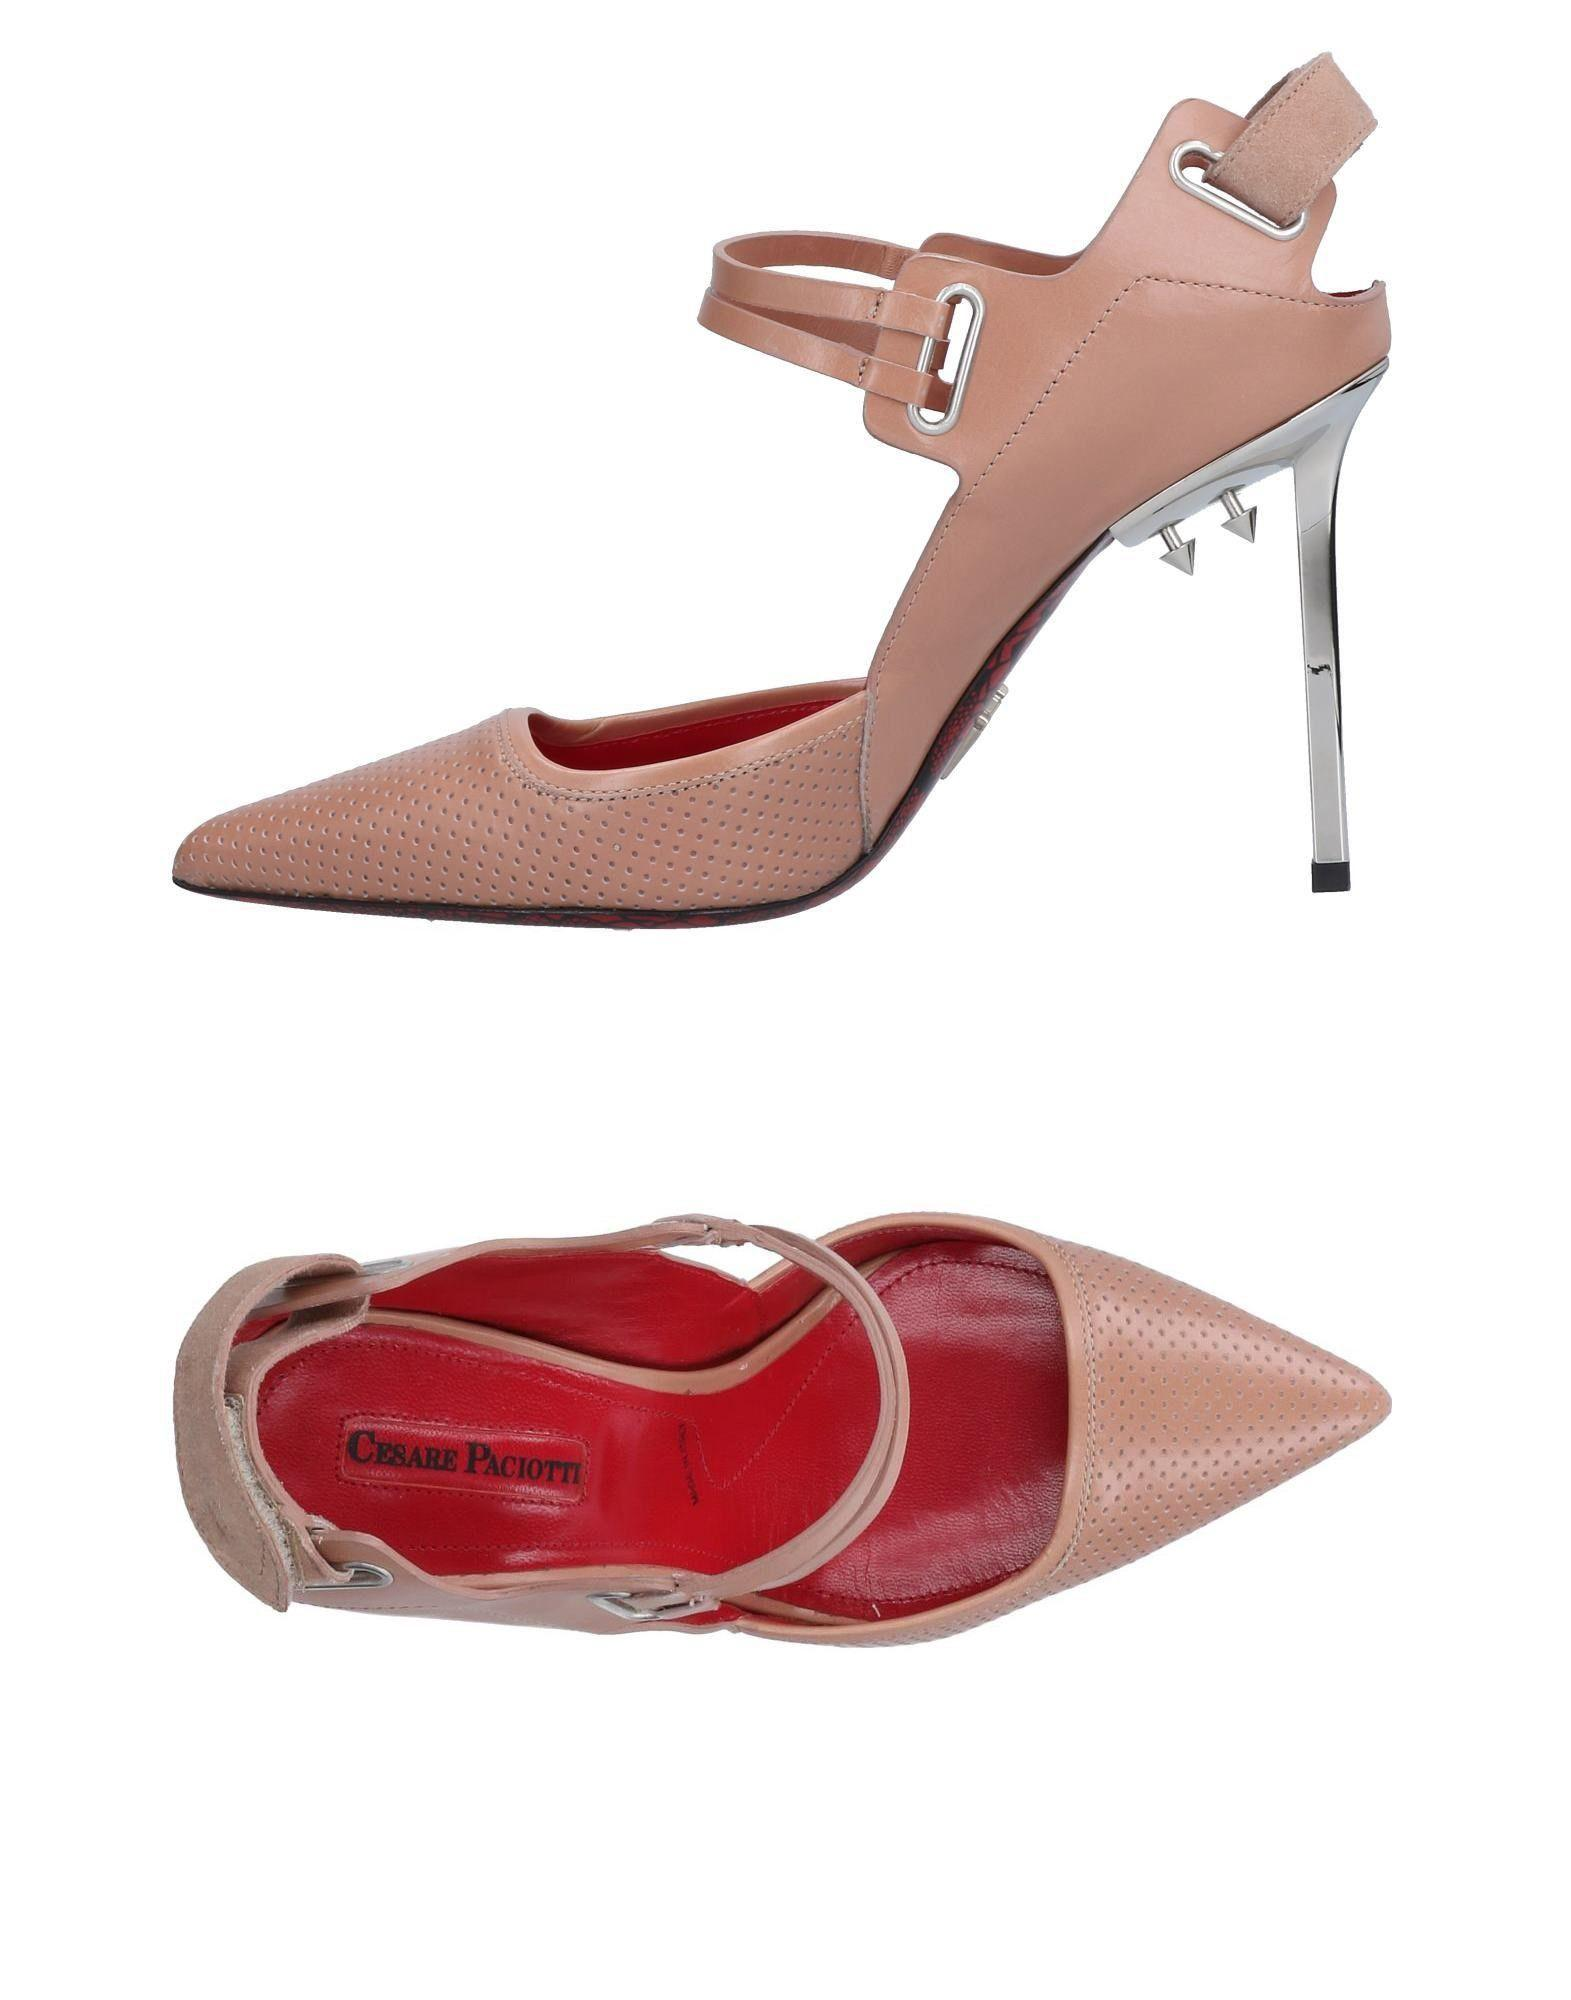 Pumps in Pale Pink